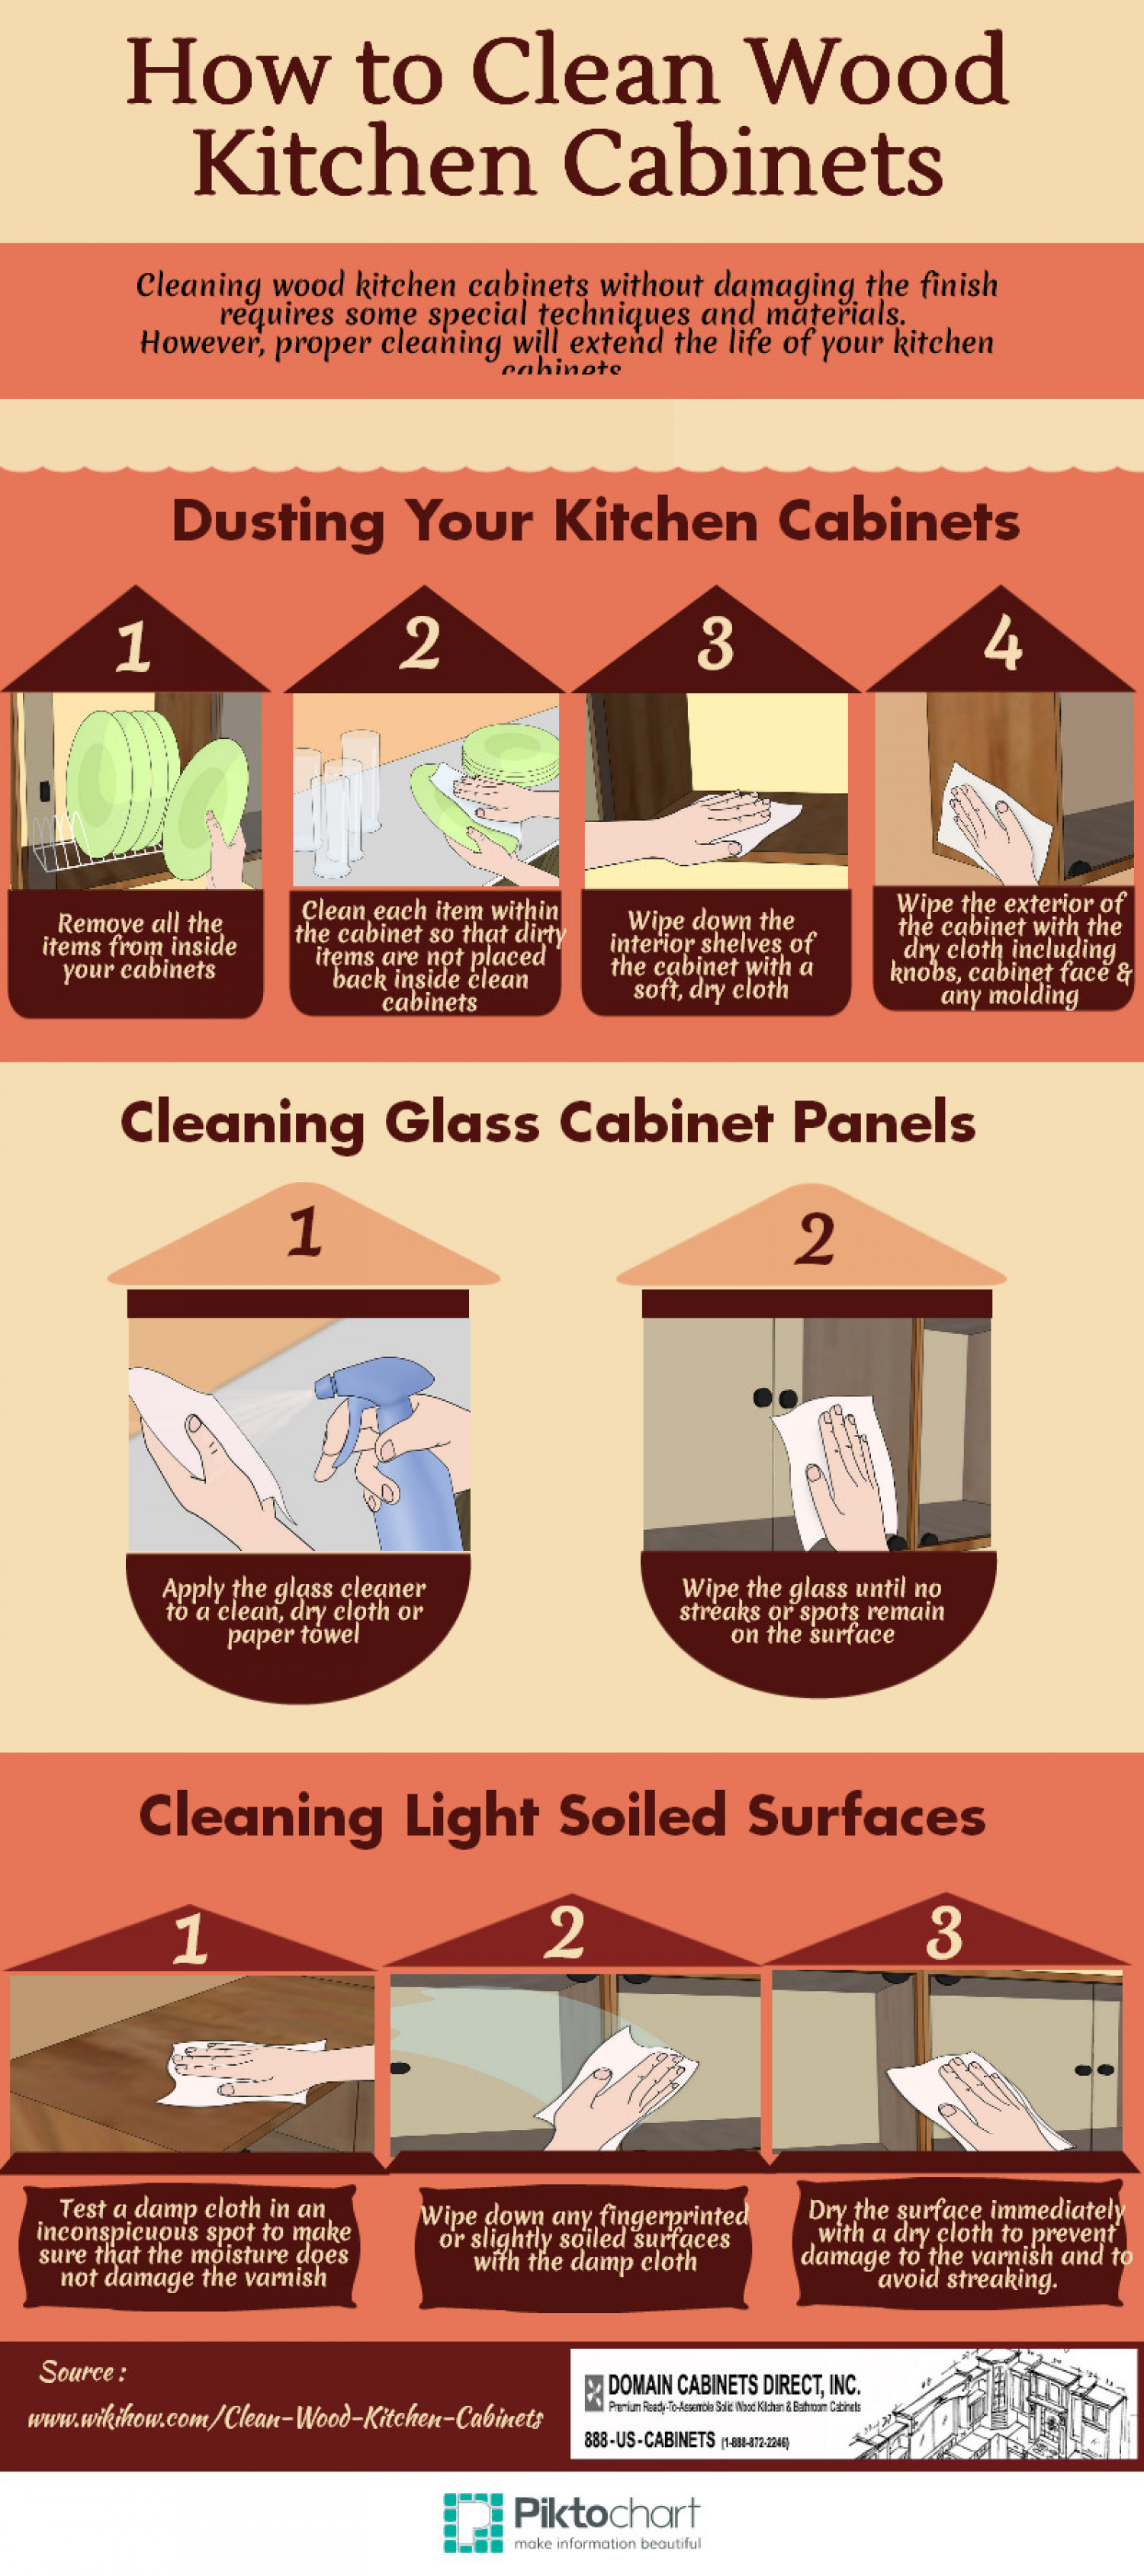 How To Clean Wood Kitchen Cabinets Visually - Clean kitchen cabinets wood